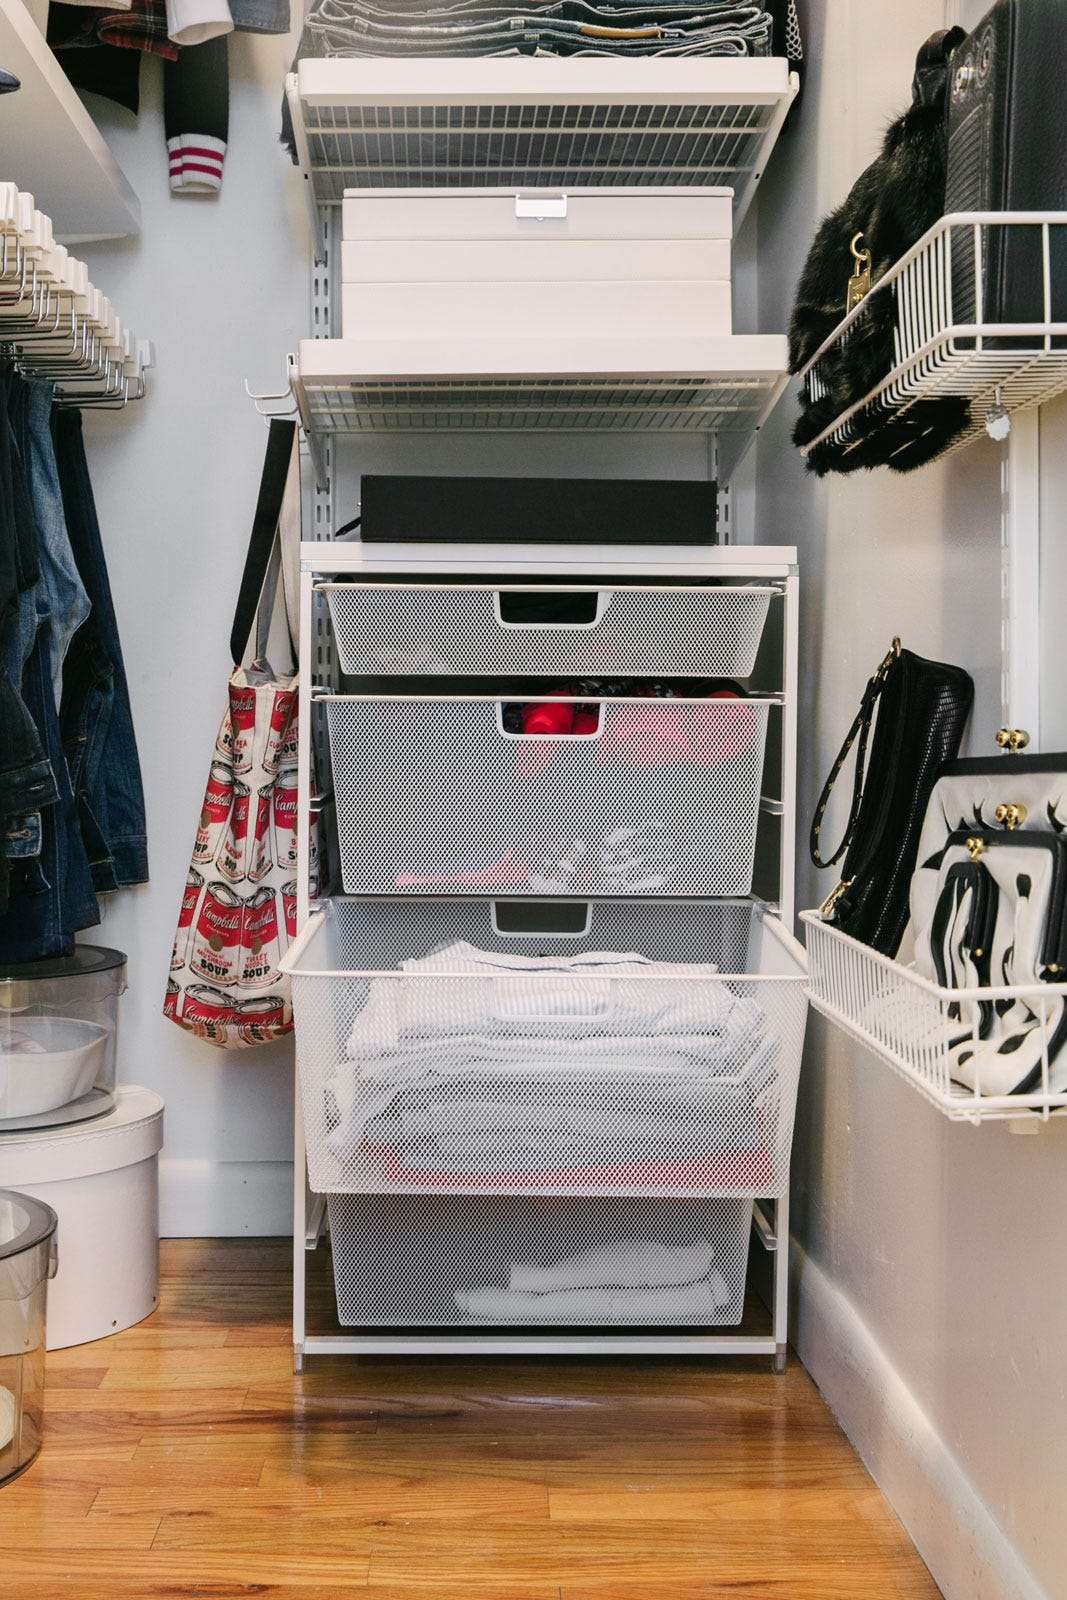 3 Person Couch Small Walk-in Closet Organization Tips